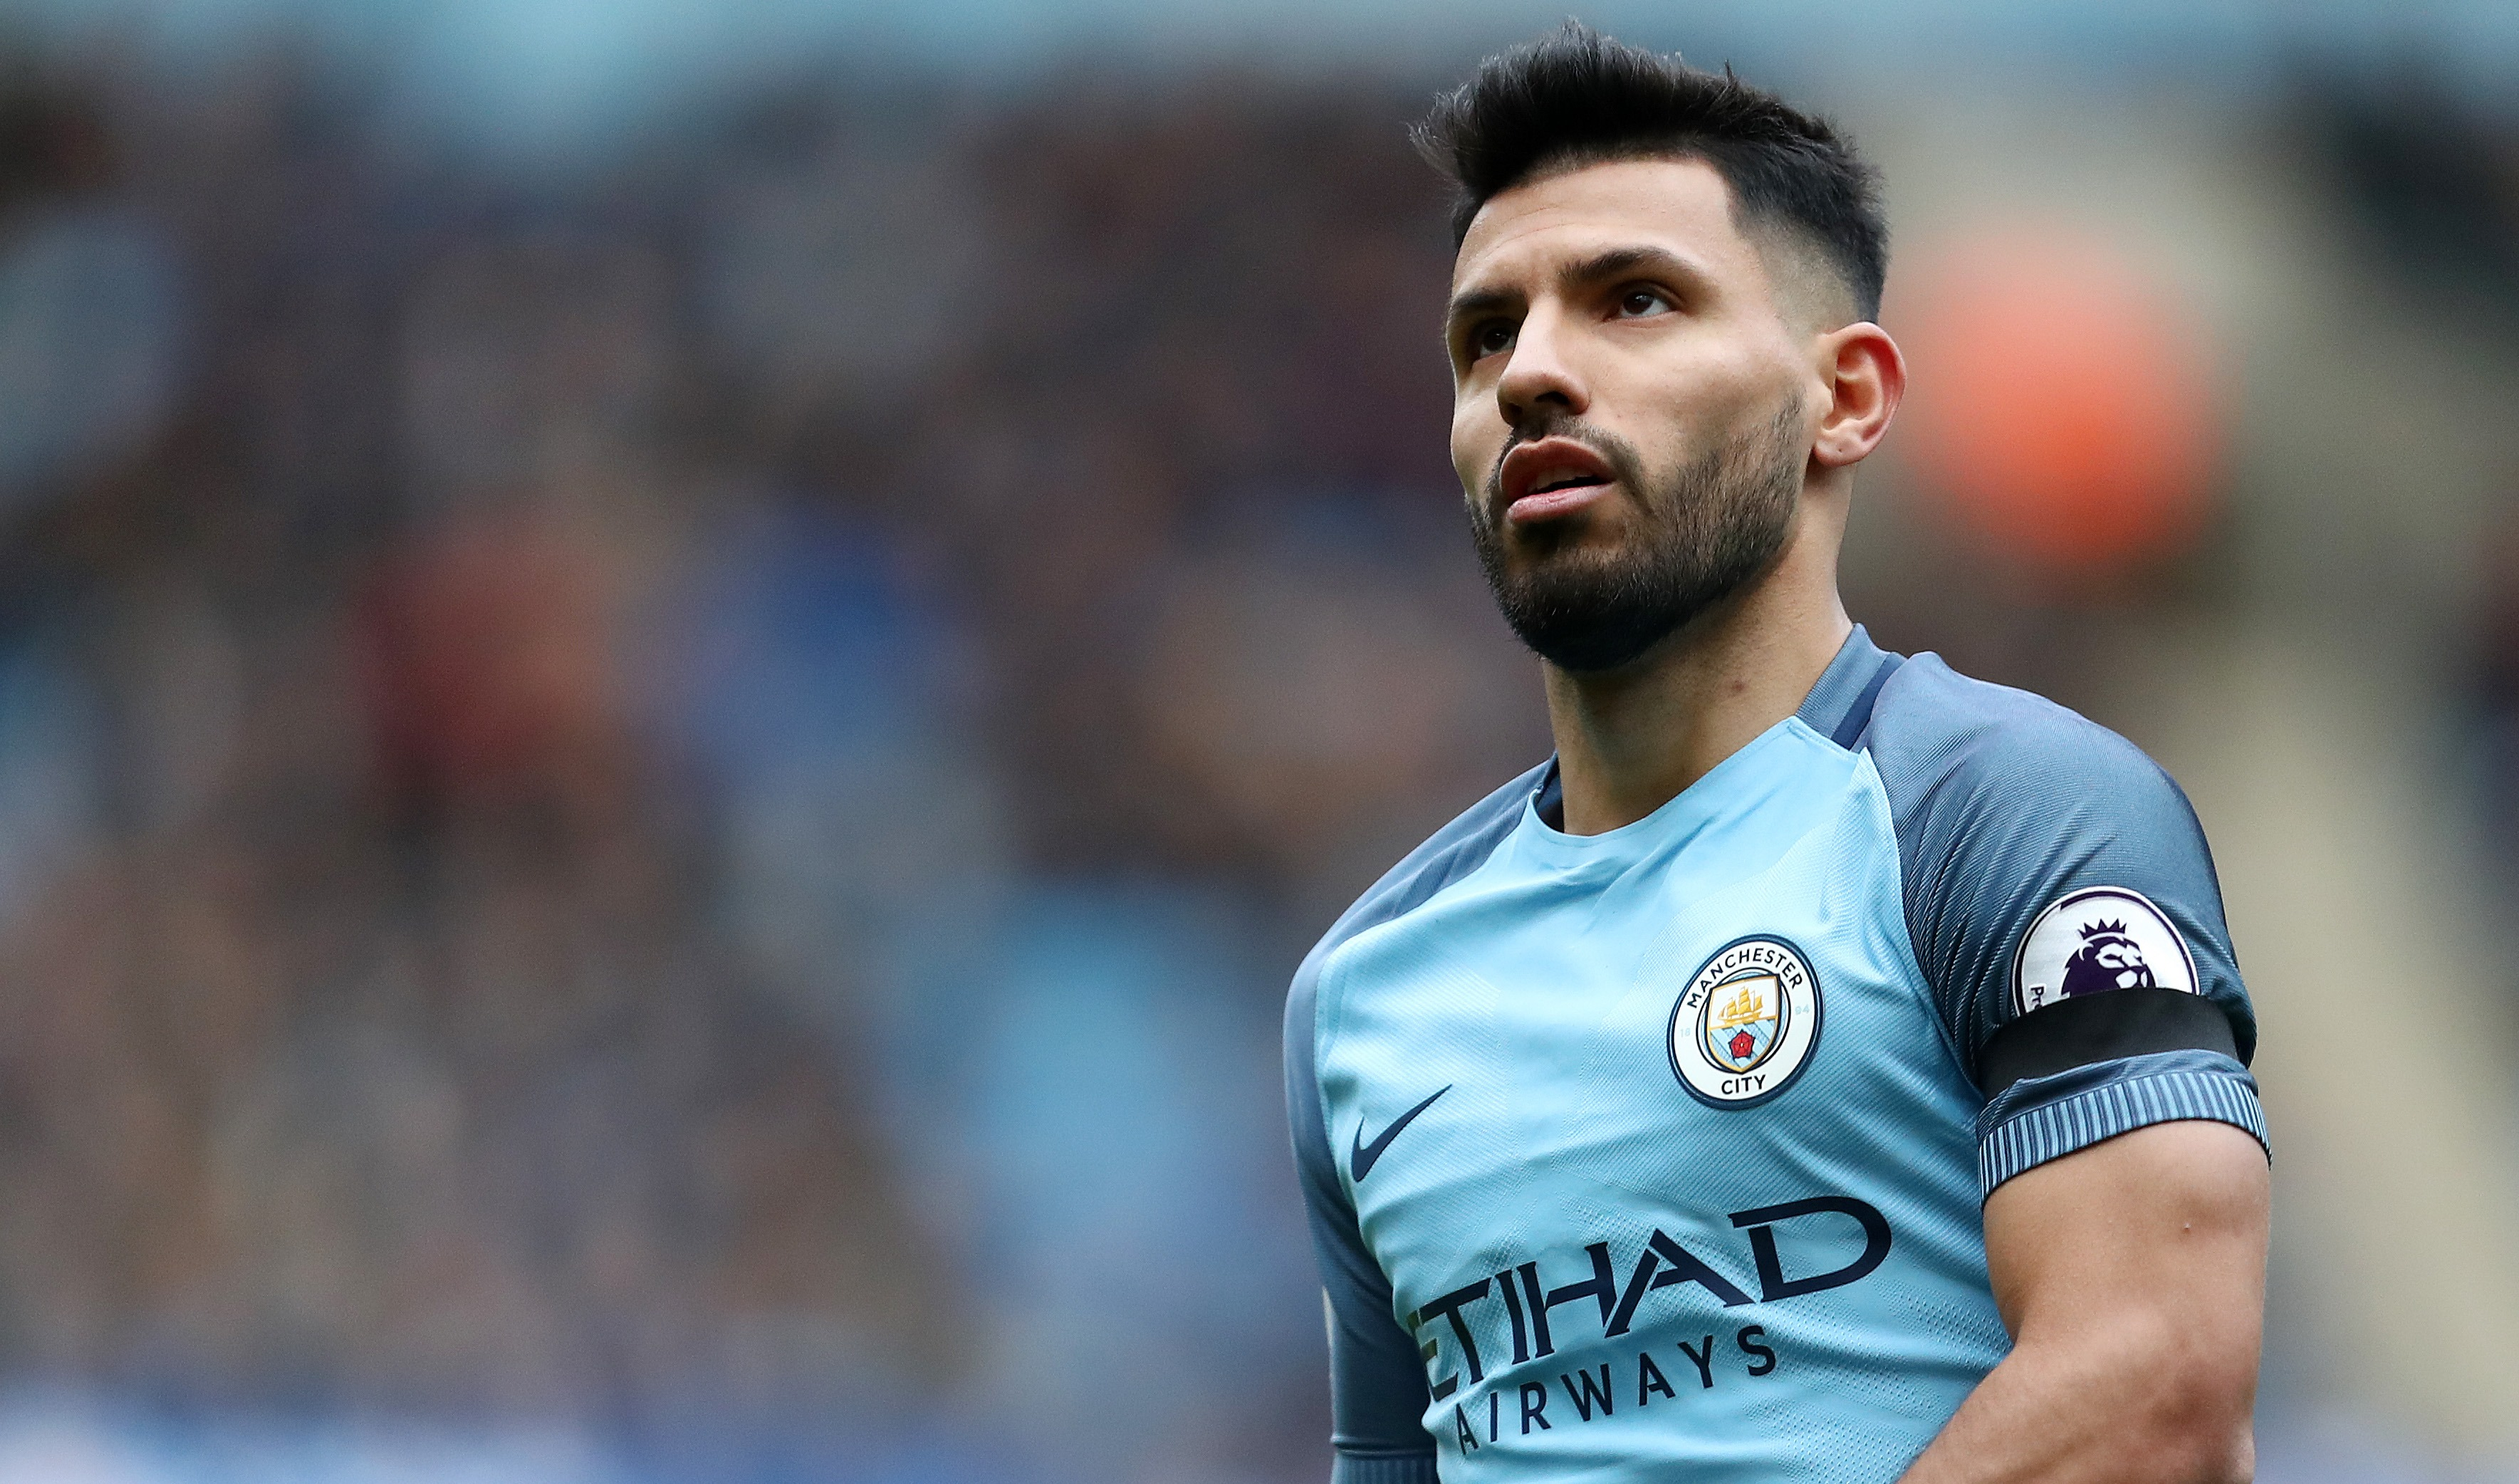 manchester city - سرخیو آگوئرو   بیوگرافی سرخیو آگوئرو همراه با عکس